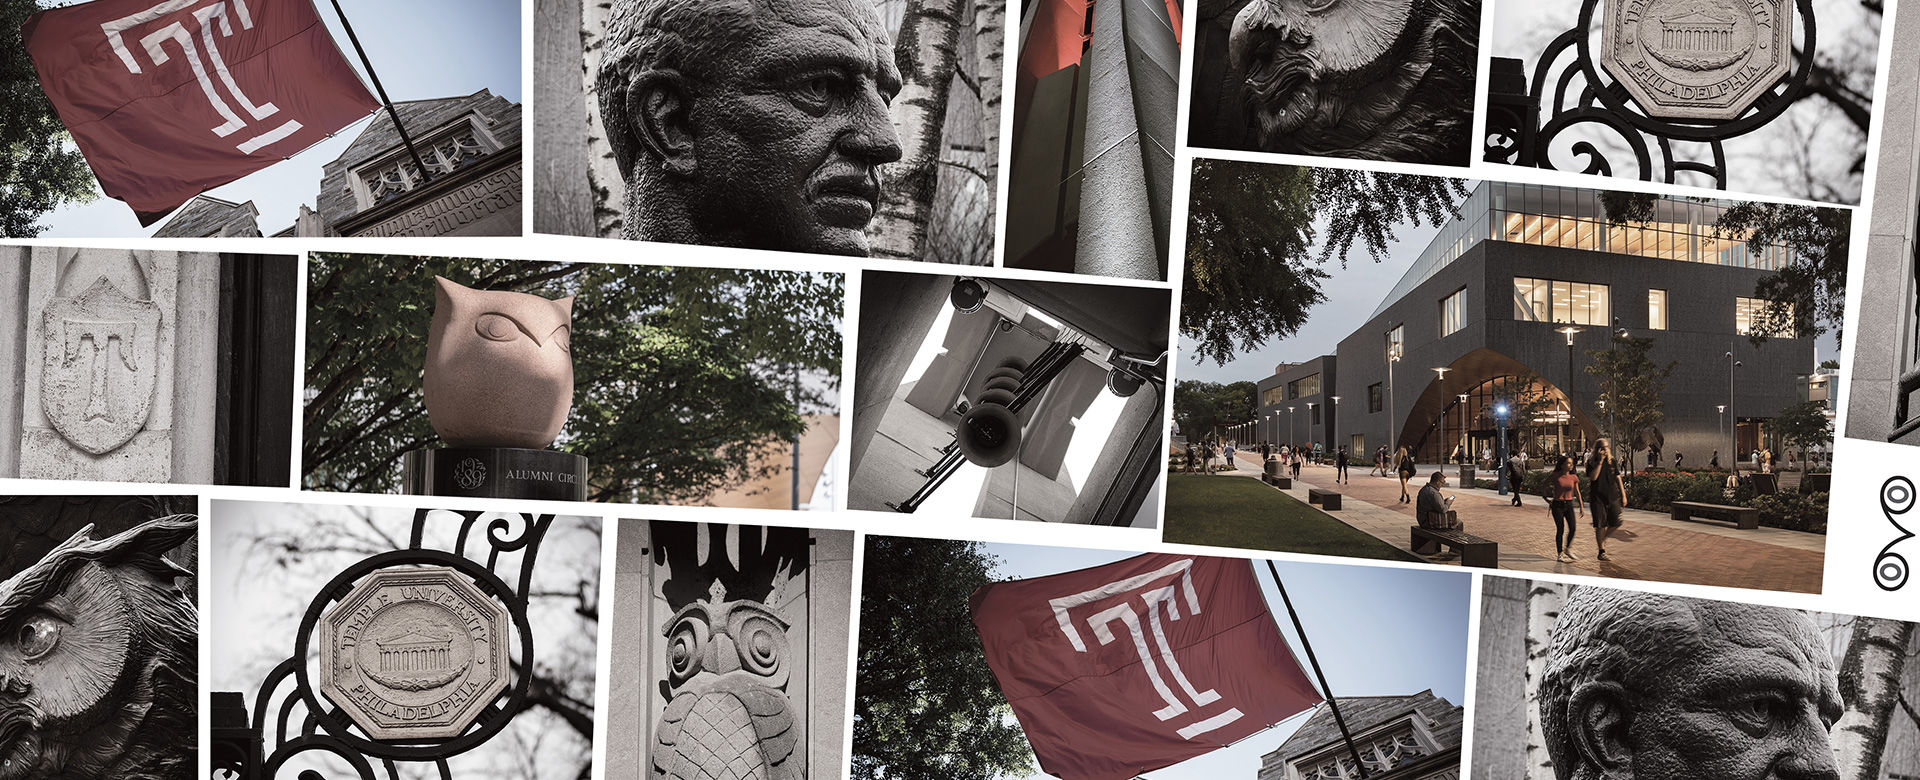 A mosaic of various Temple University landmarks, including the Bell Tower and statue of Russell Conwell.